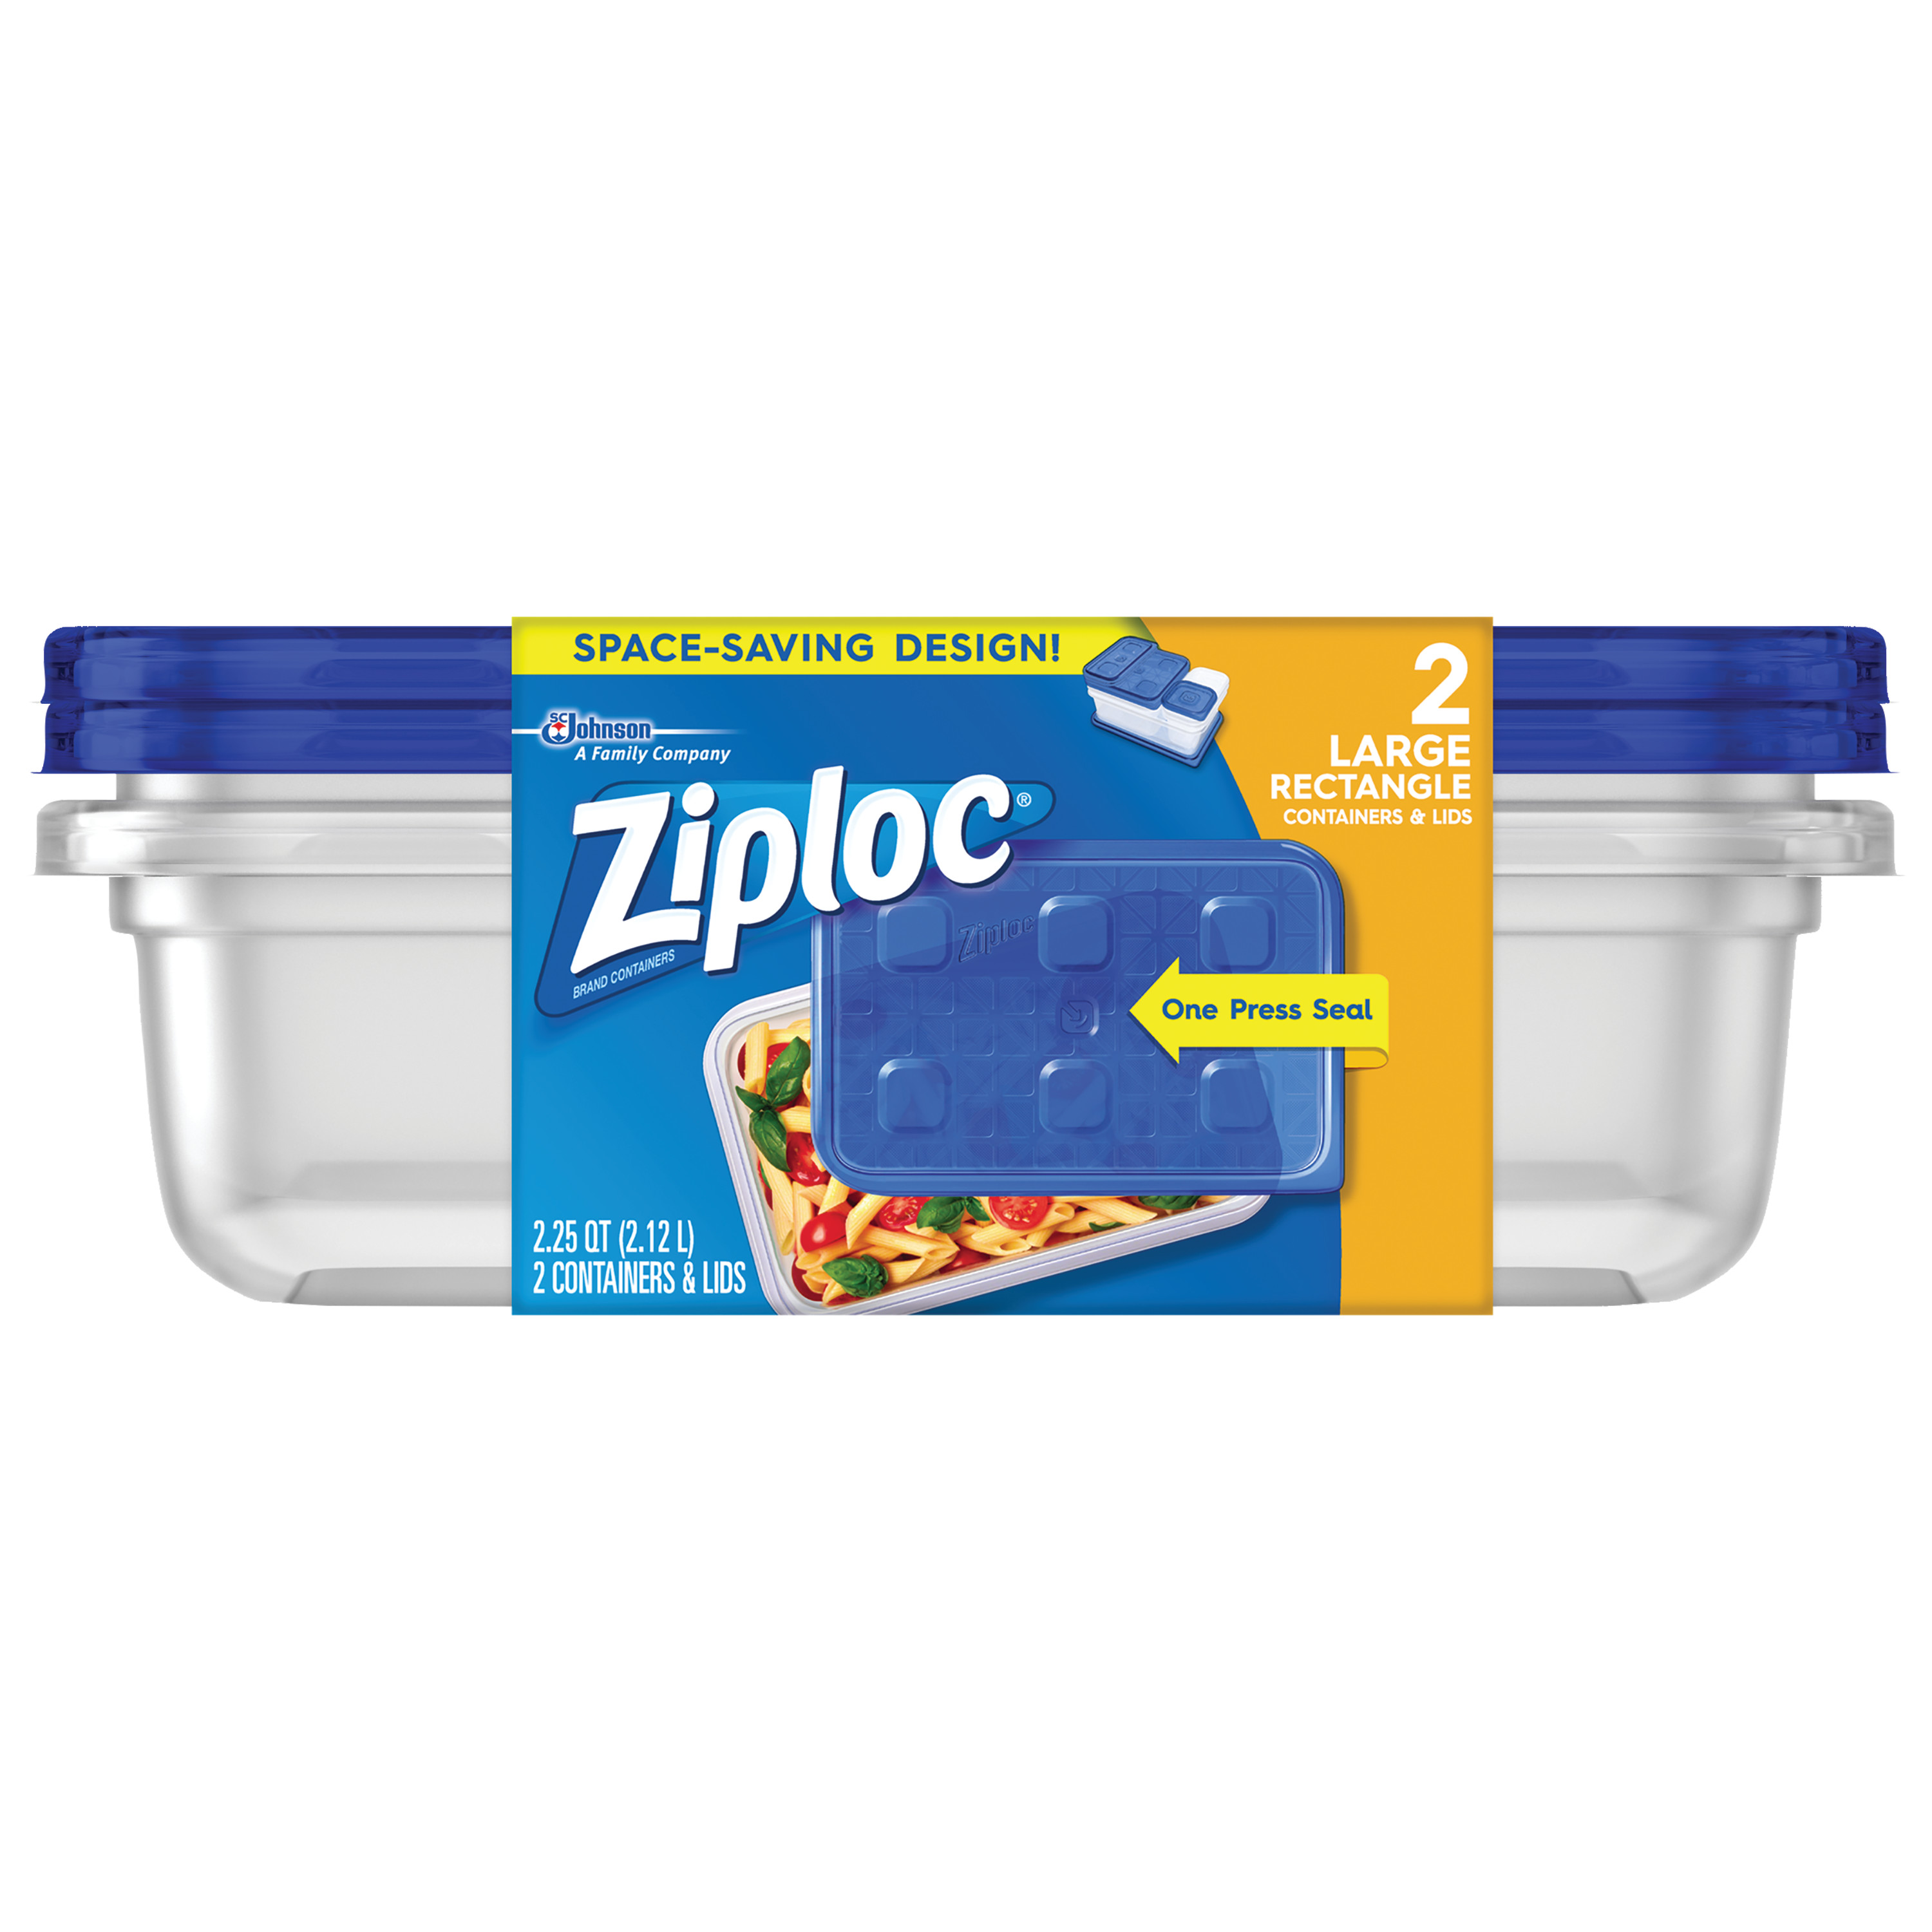 Ziploc Container with One Press Seal, Large Rectangle, 2 count